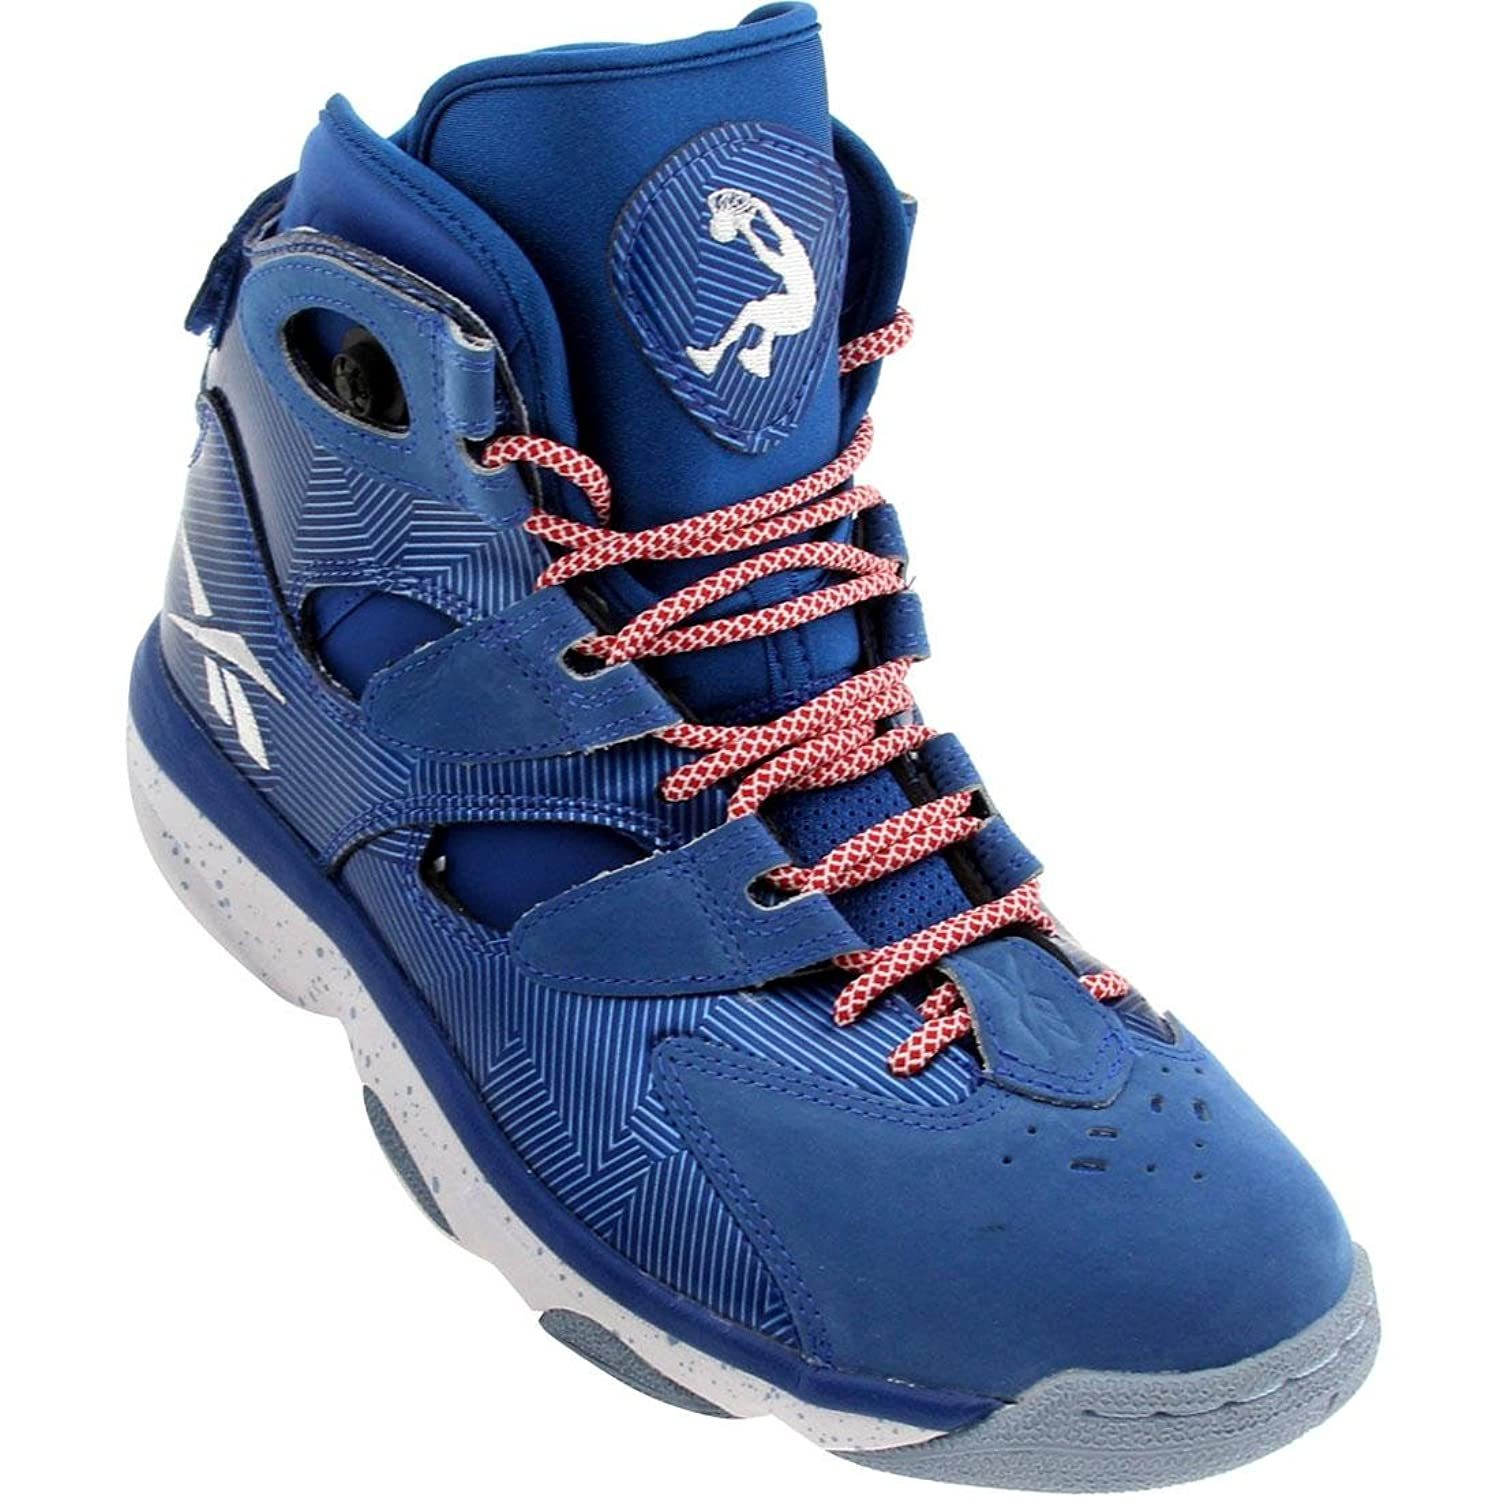 shaq reebok pumps for sale cheap   OFF55% The Largest Catalog Discounts b4bbdfed7